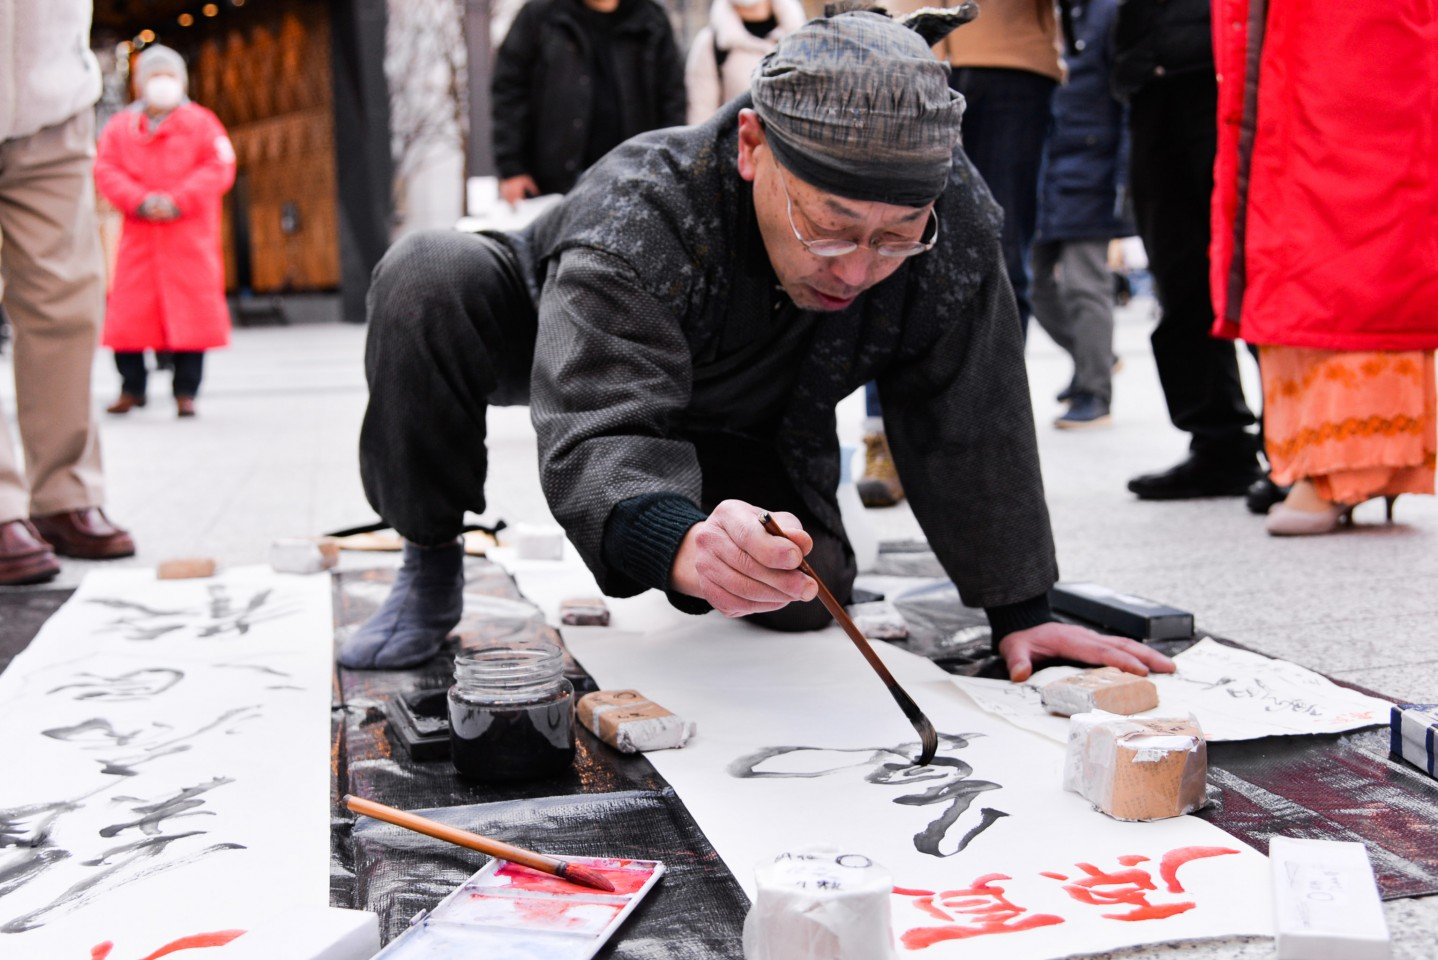 A Japanese calligrapher writes his prayers and blessings (难病退散,万病平愈, roughly, viruses retreat, and illnesses cured) for Wuhan on 9 February 2020, in the streets of Tokyo. (CNS)